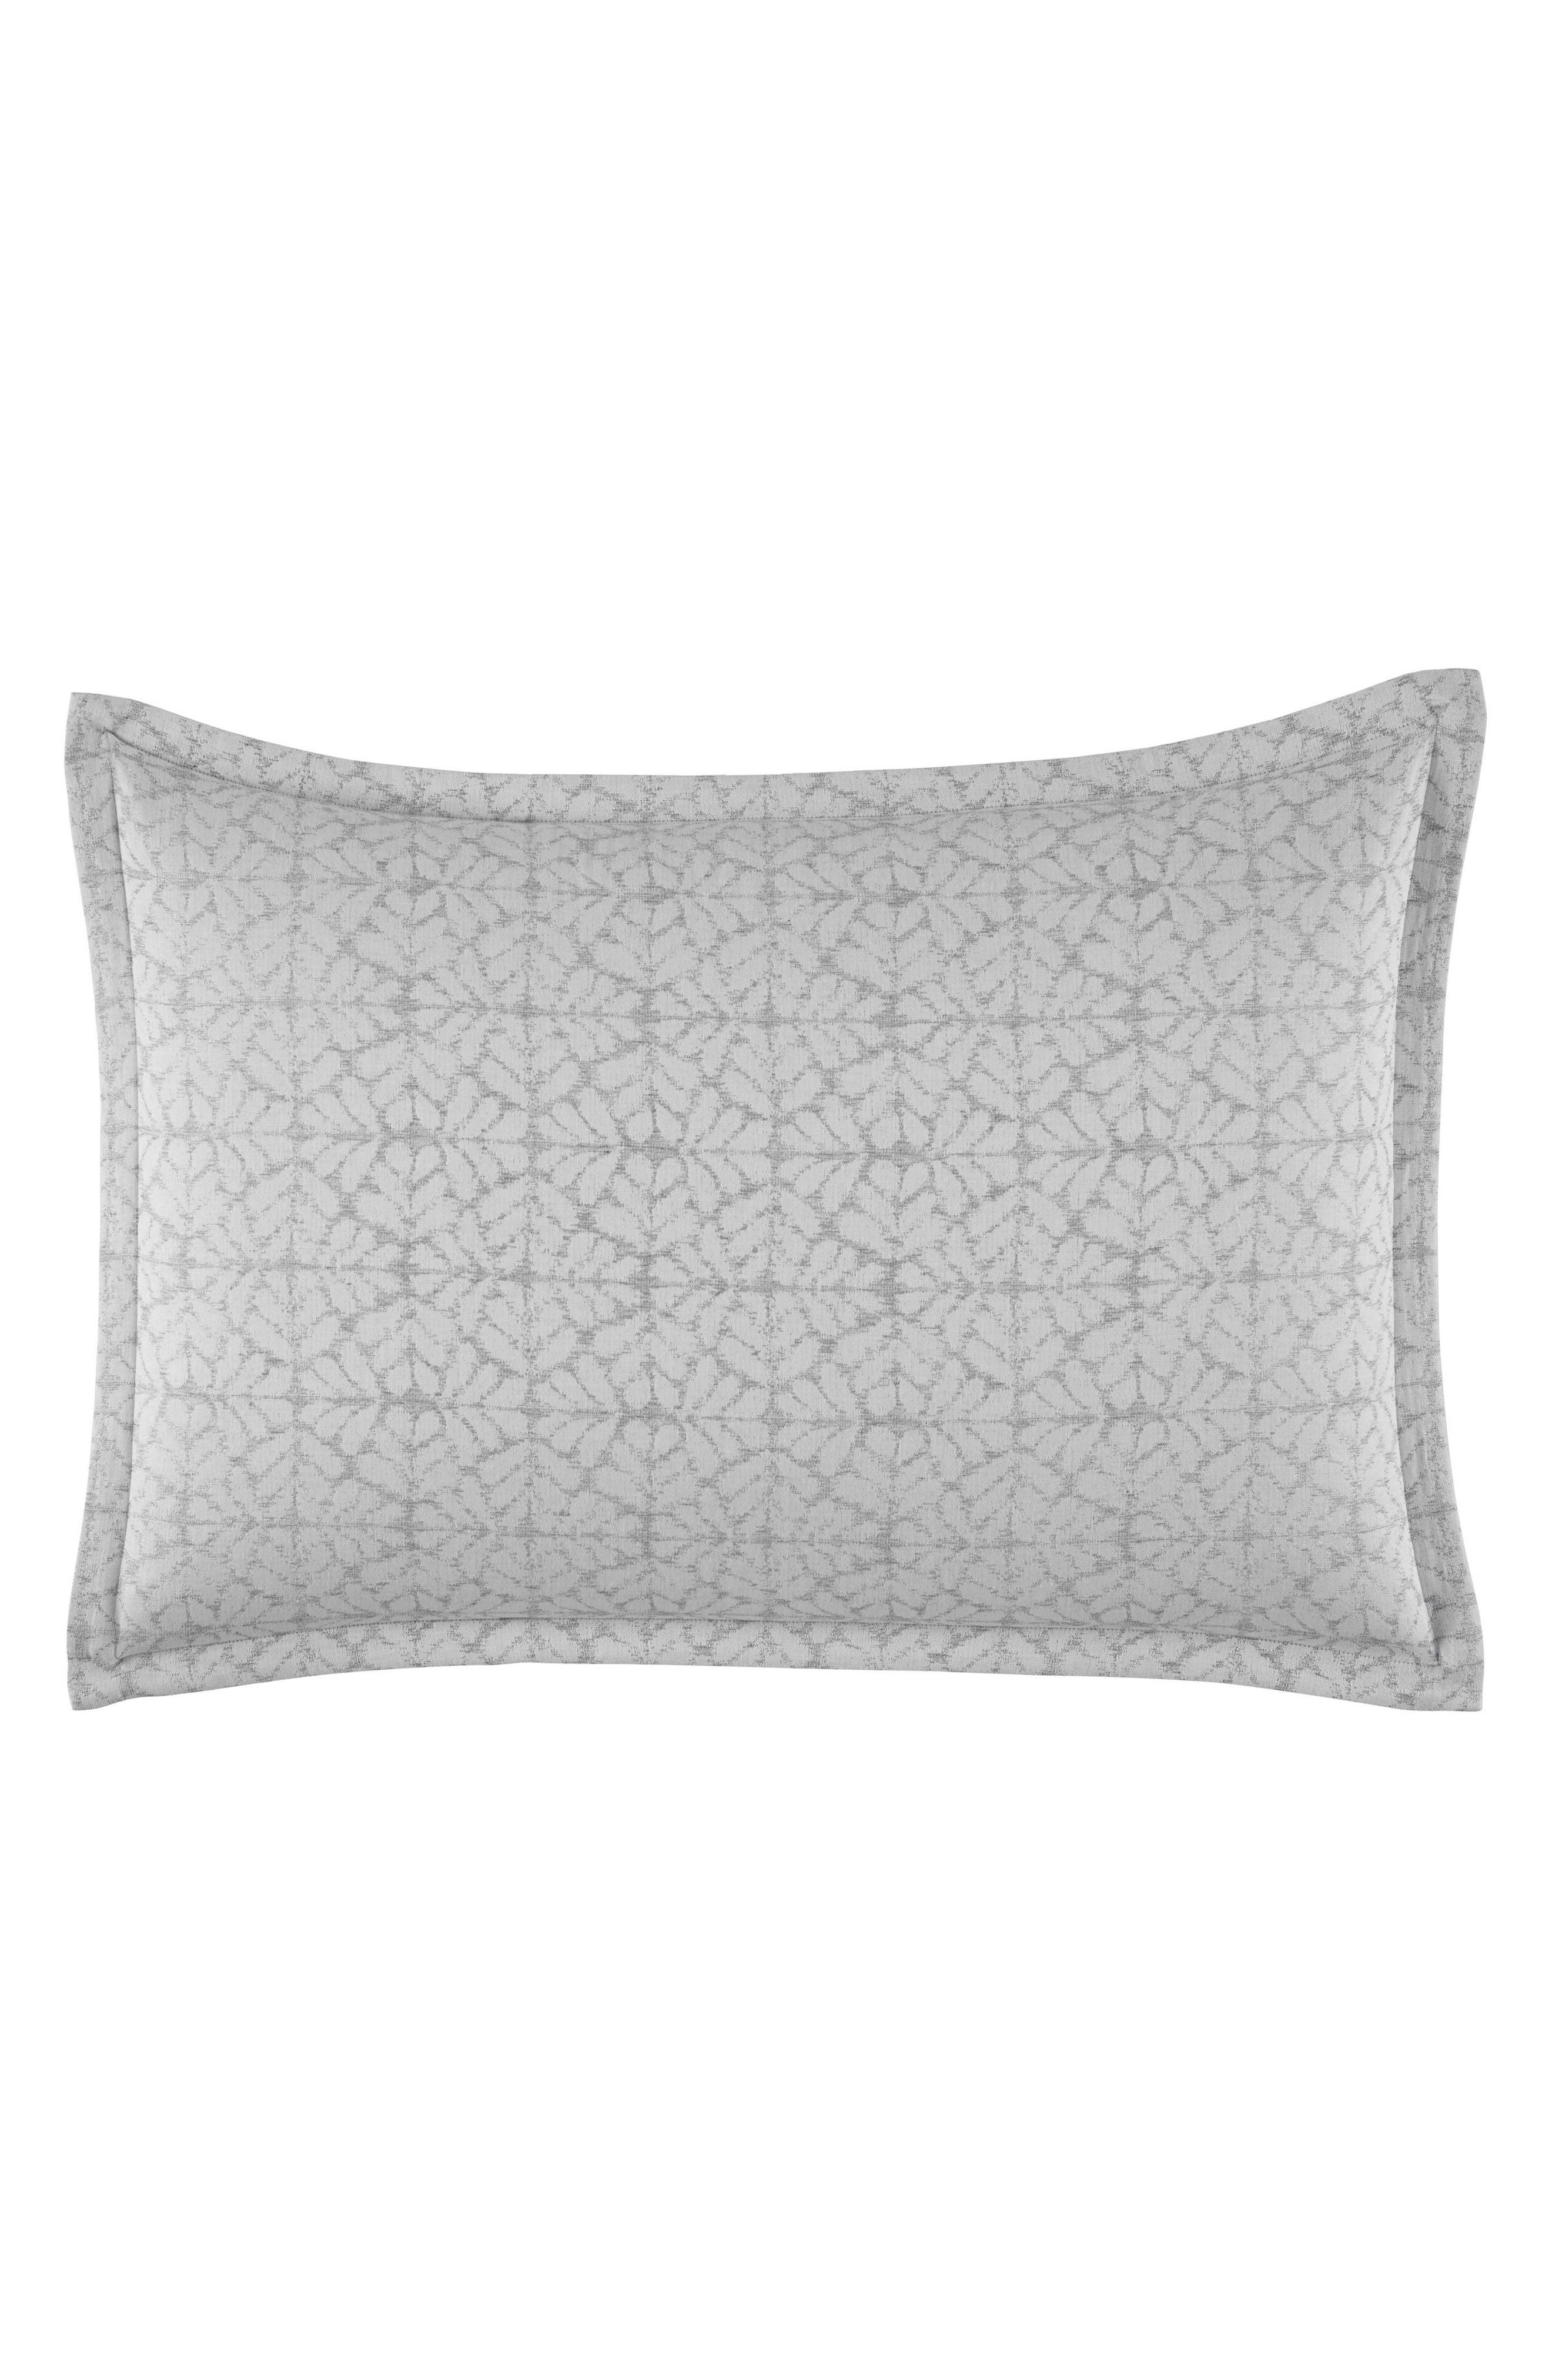 Main Image - Vera Wang Mirrored Square Sham